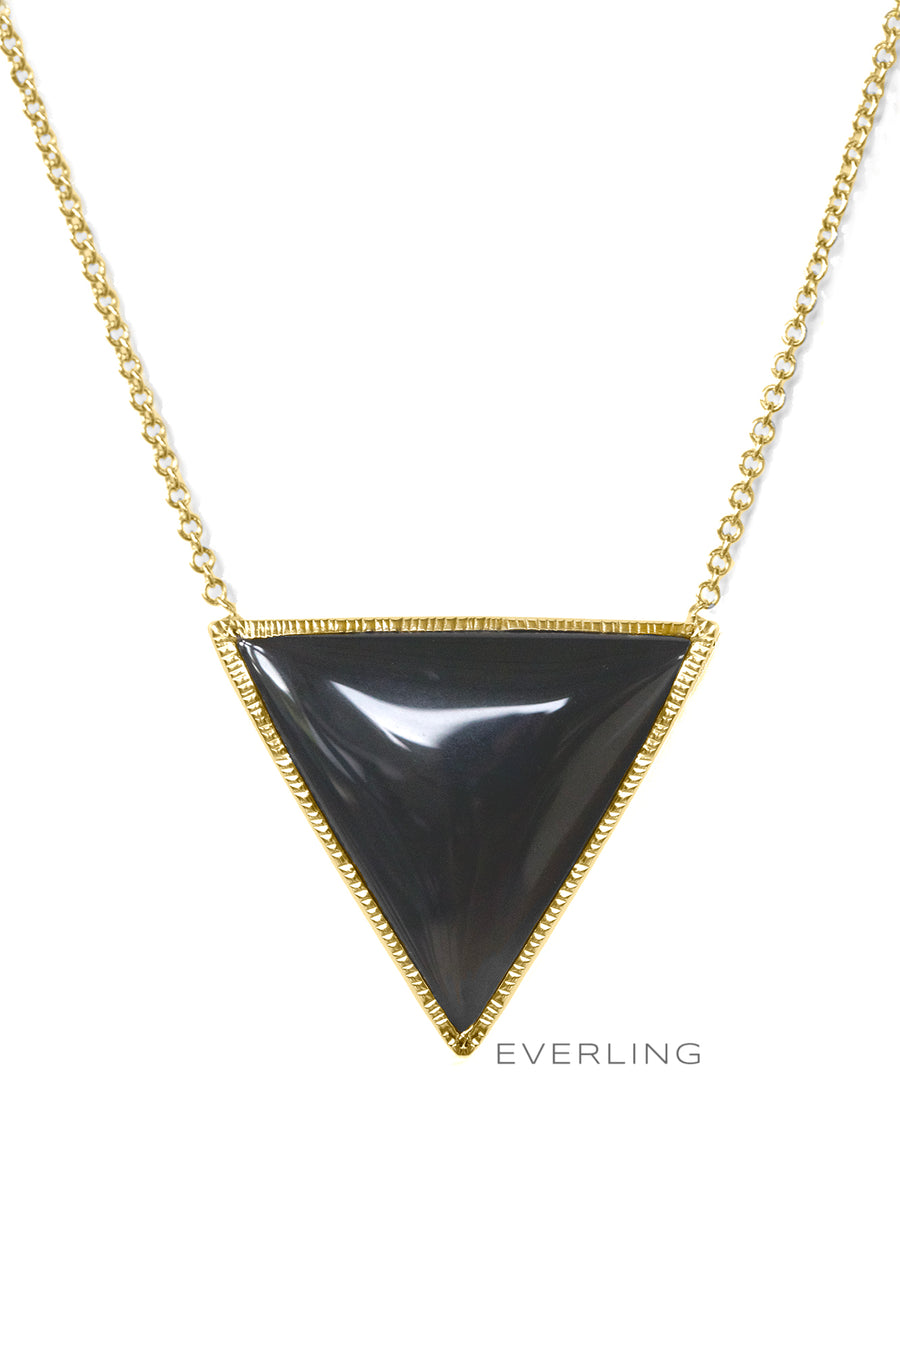 Detail-Recycled 18K Yellow Gold Bezel-Set Trillion Tiger Eye Necklace. #designerjewelry www.everlingjewelry.com